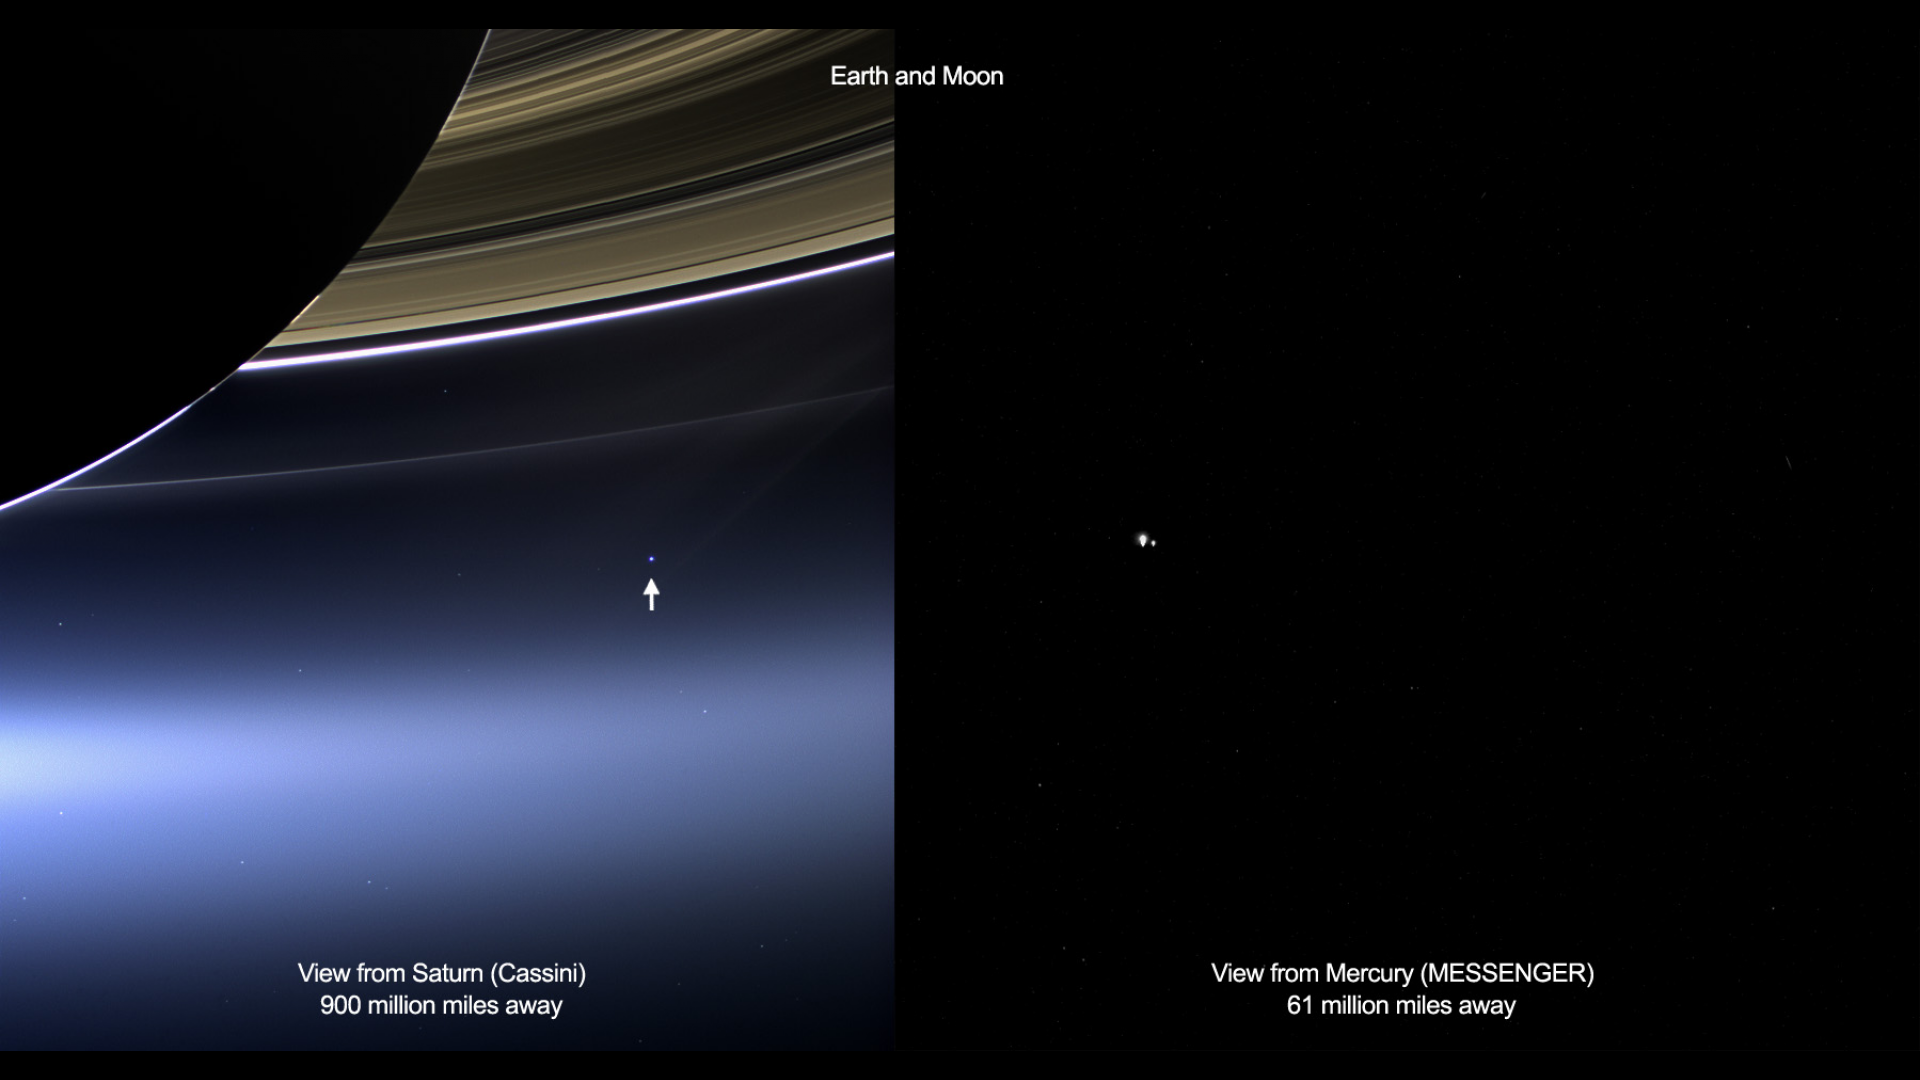 Incredible Images Of Earth From Saturn And Mercury Lights In The Dark